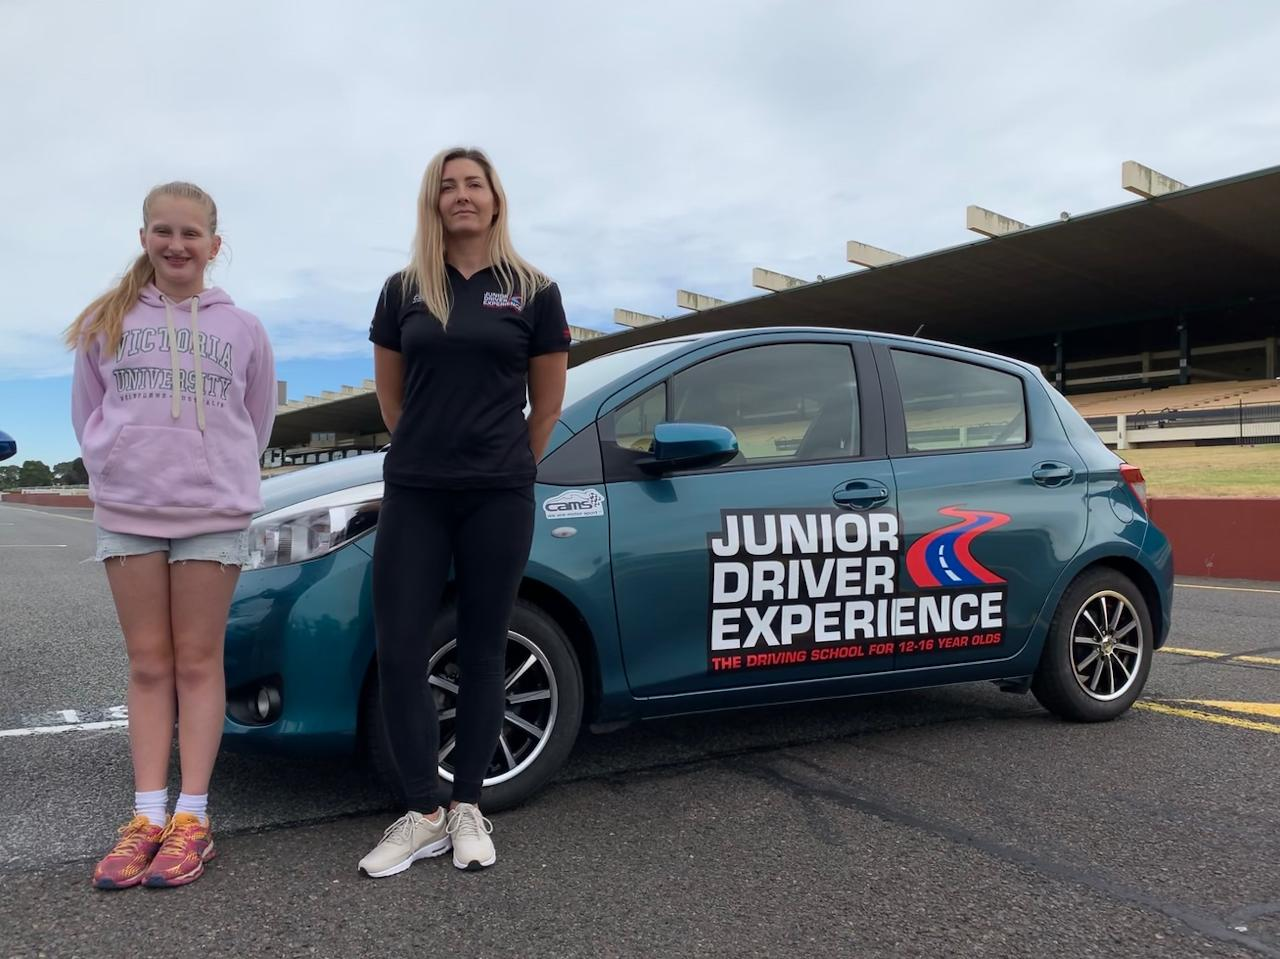 JUNIOR DRIVER EXPERIENCE